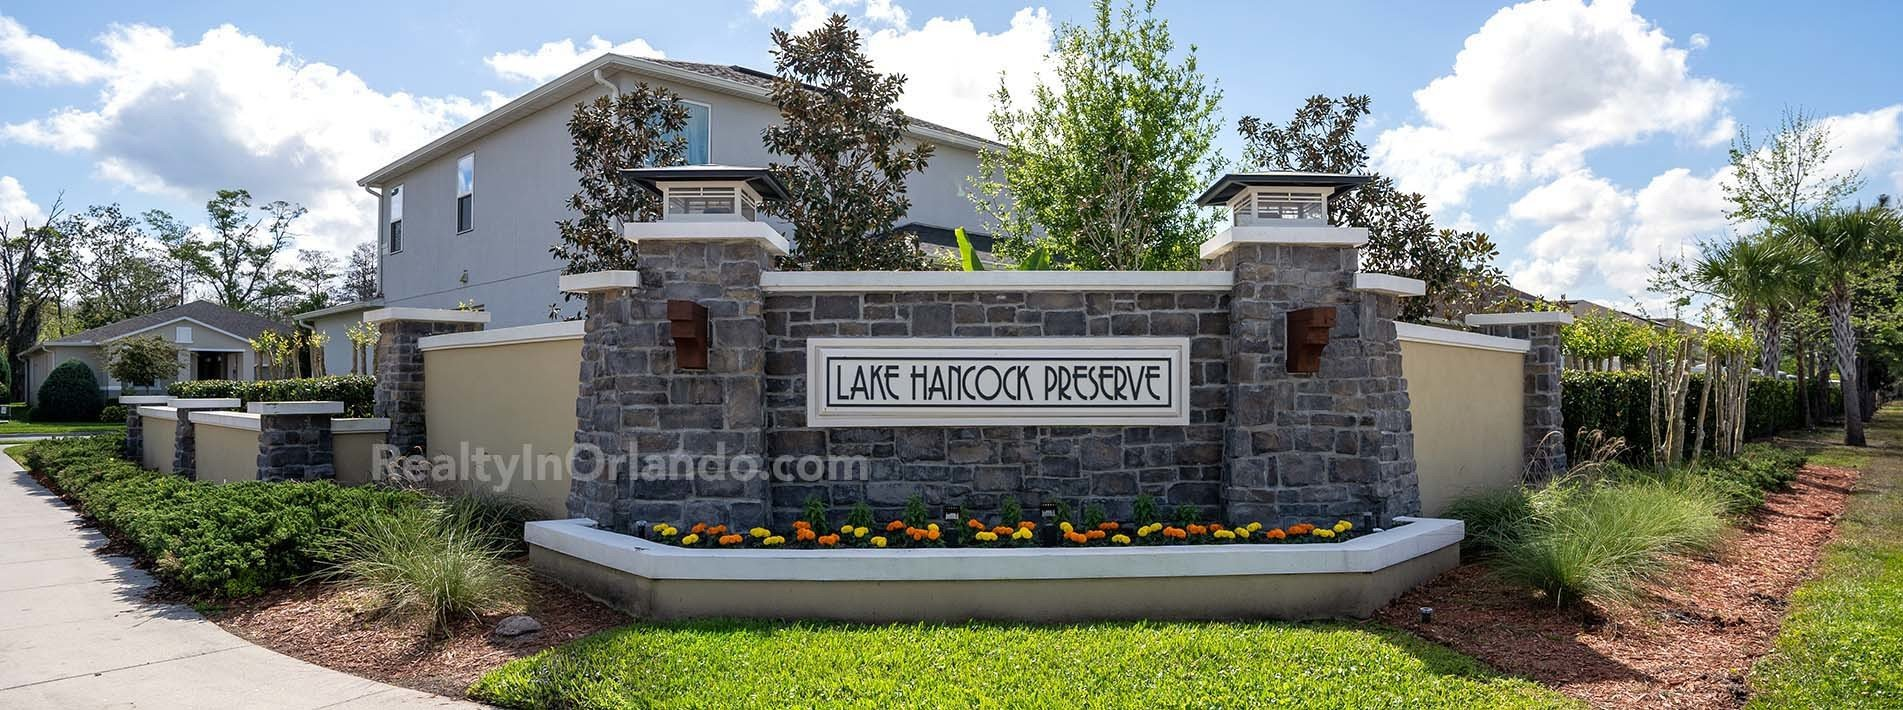 Lake Hancock Reserve Winter Garden Real Estate